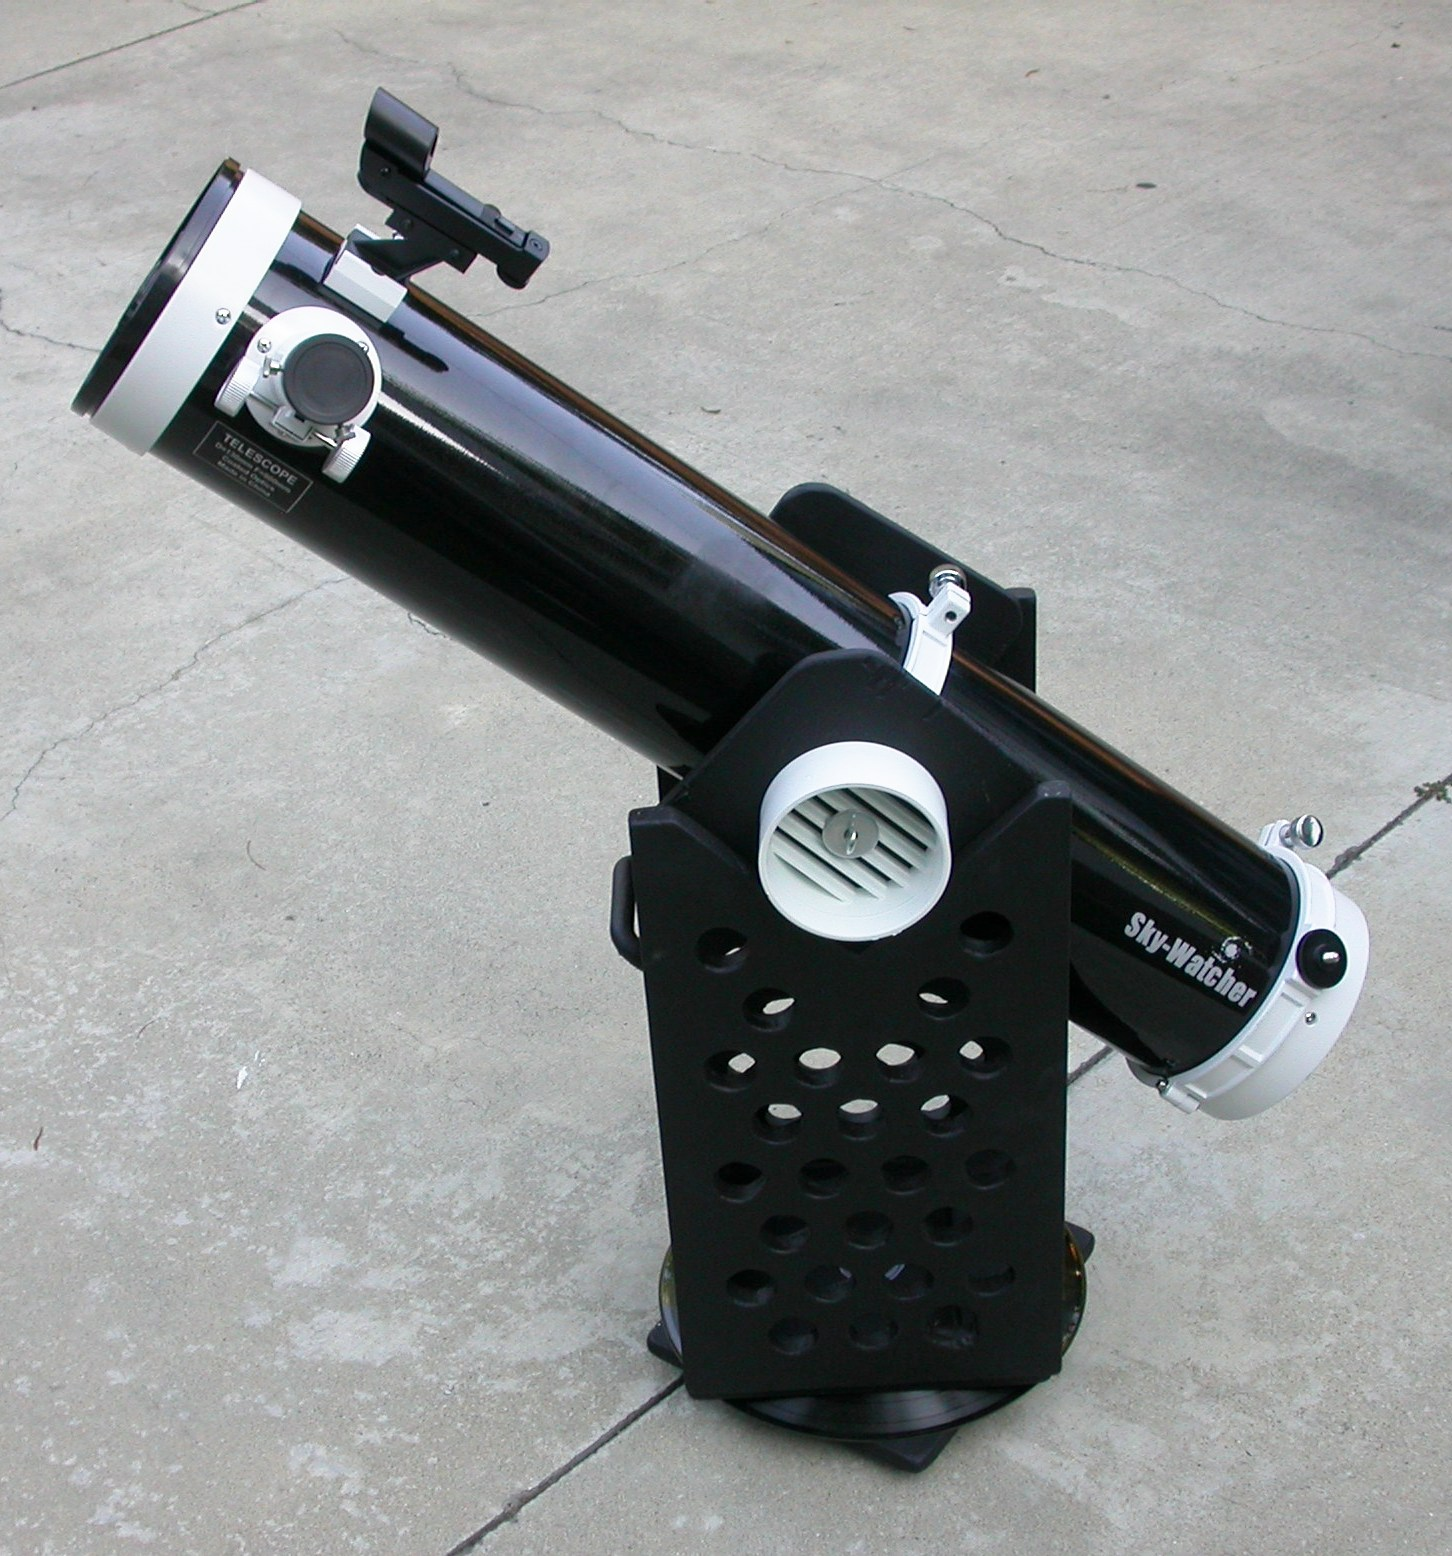 How to build a Dobsonian mount for a 5-inch telescope | 10 Minute